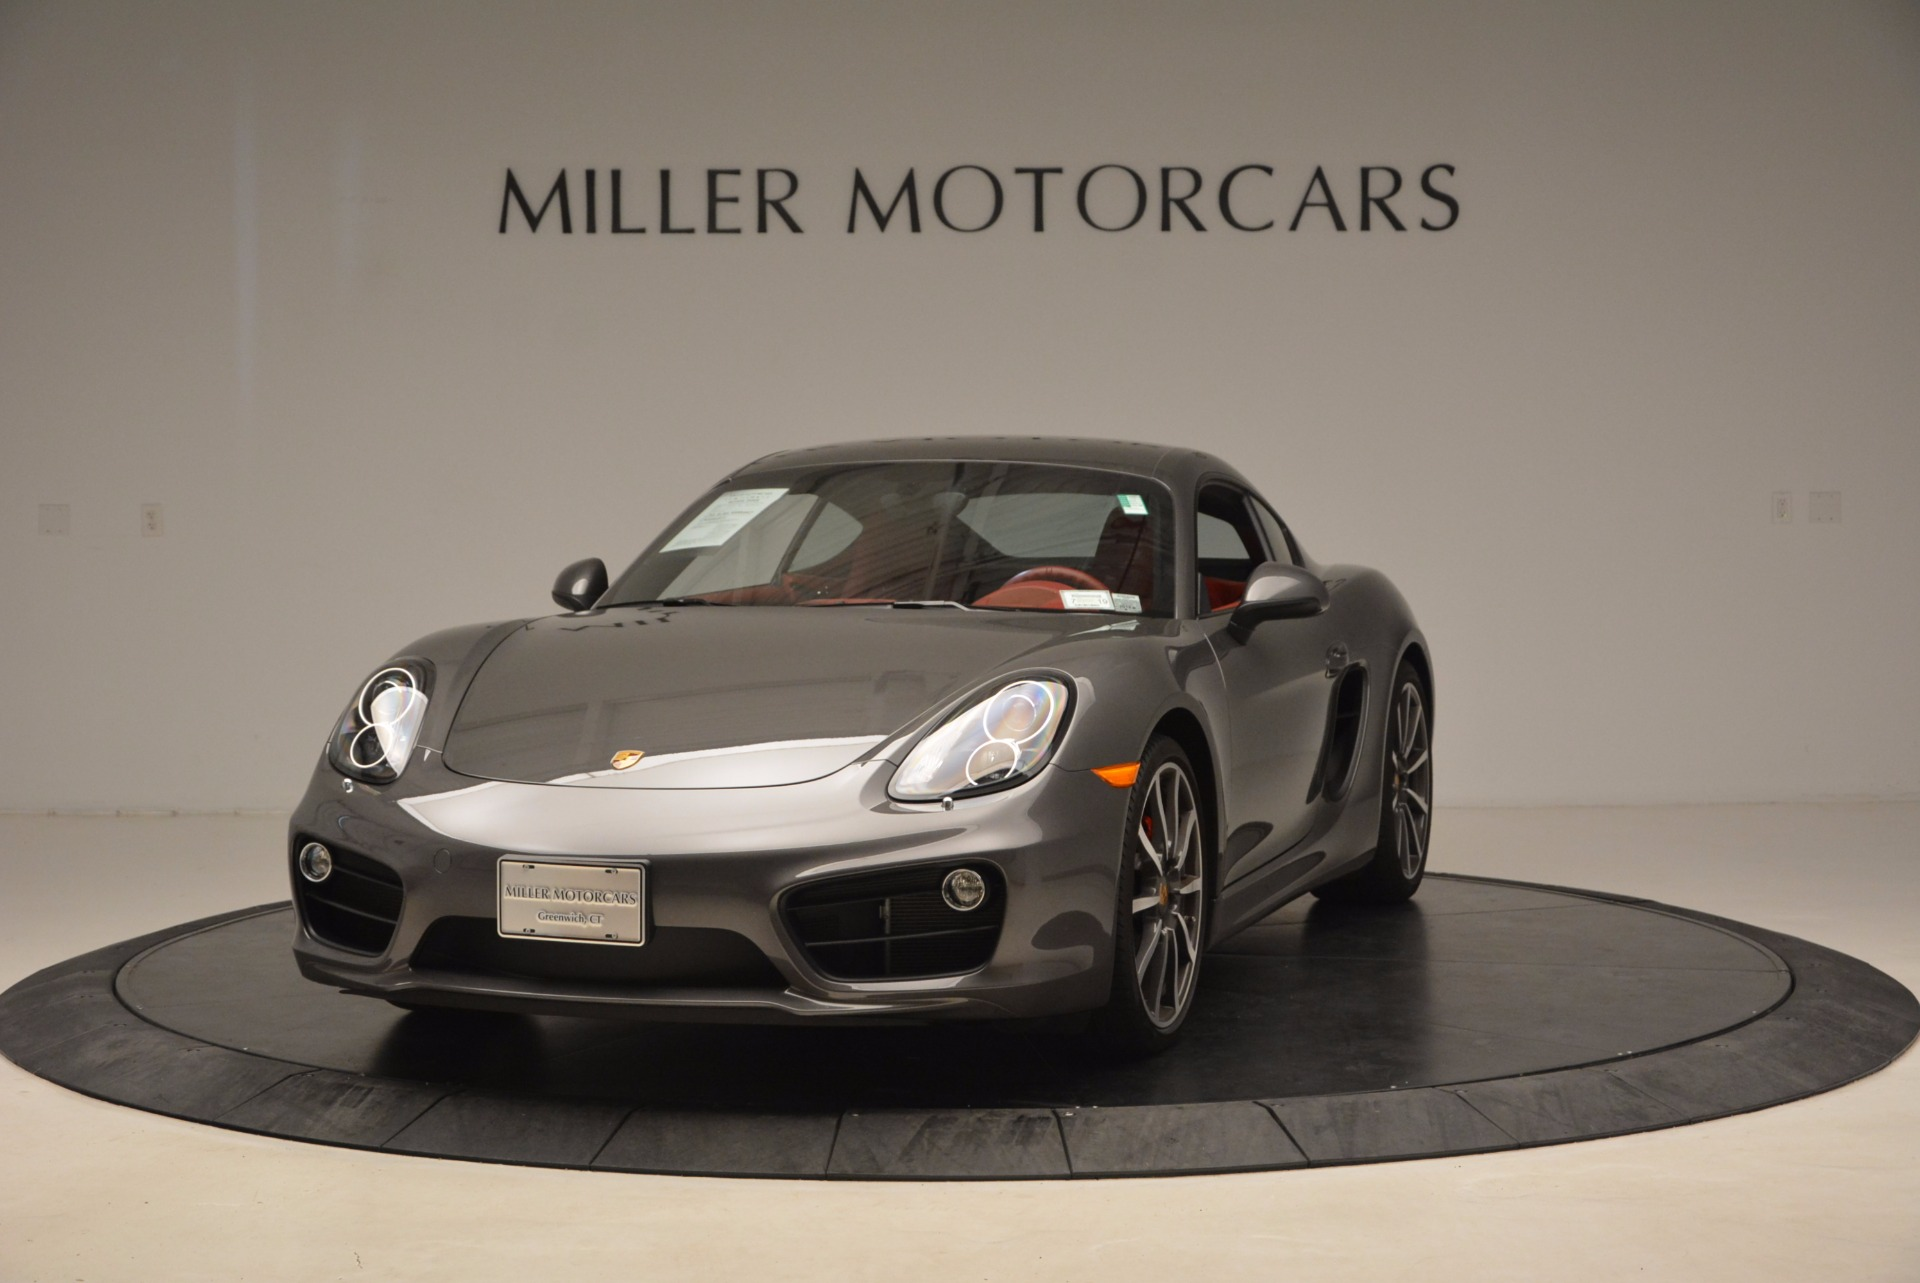 Used 2014 Porsche Cayman S S for sale Sold at Bugatti of Greenwich in Greenwich CT 06830 1